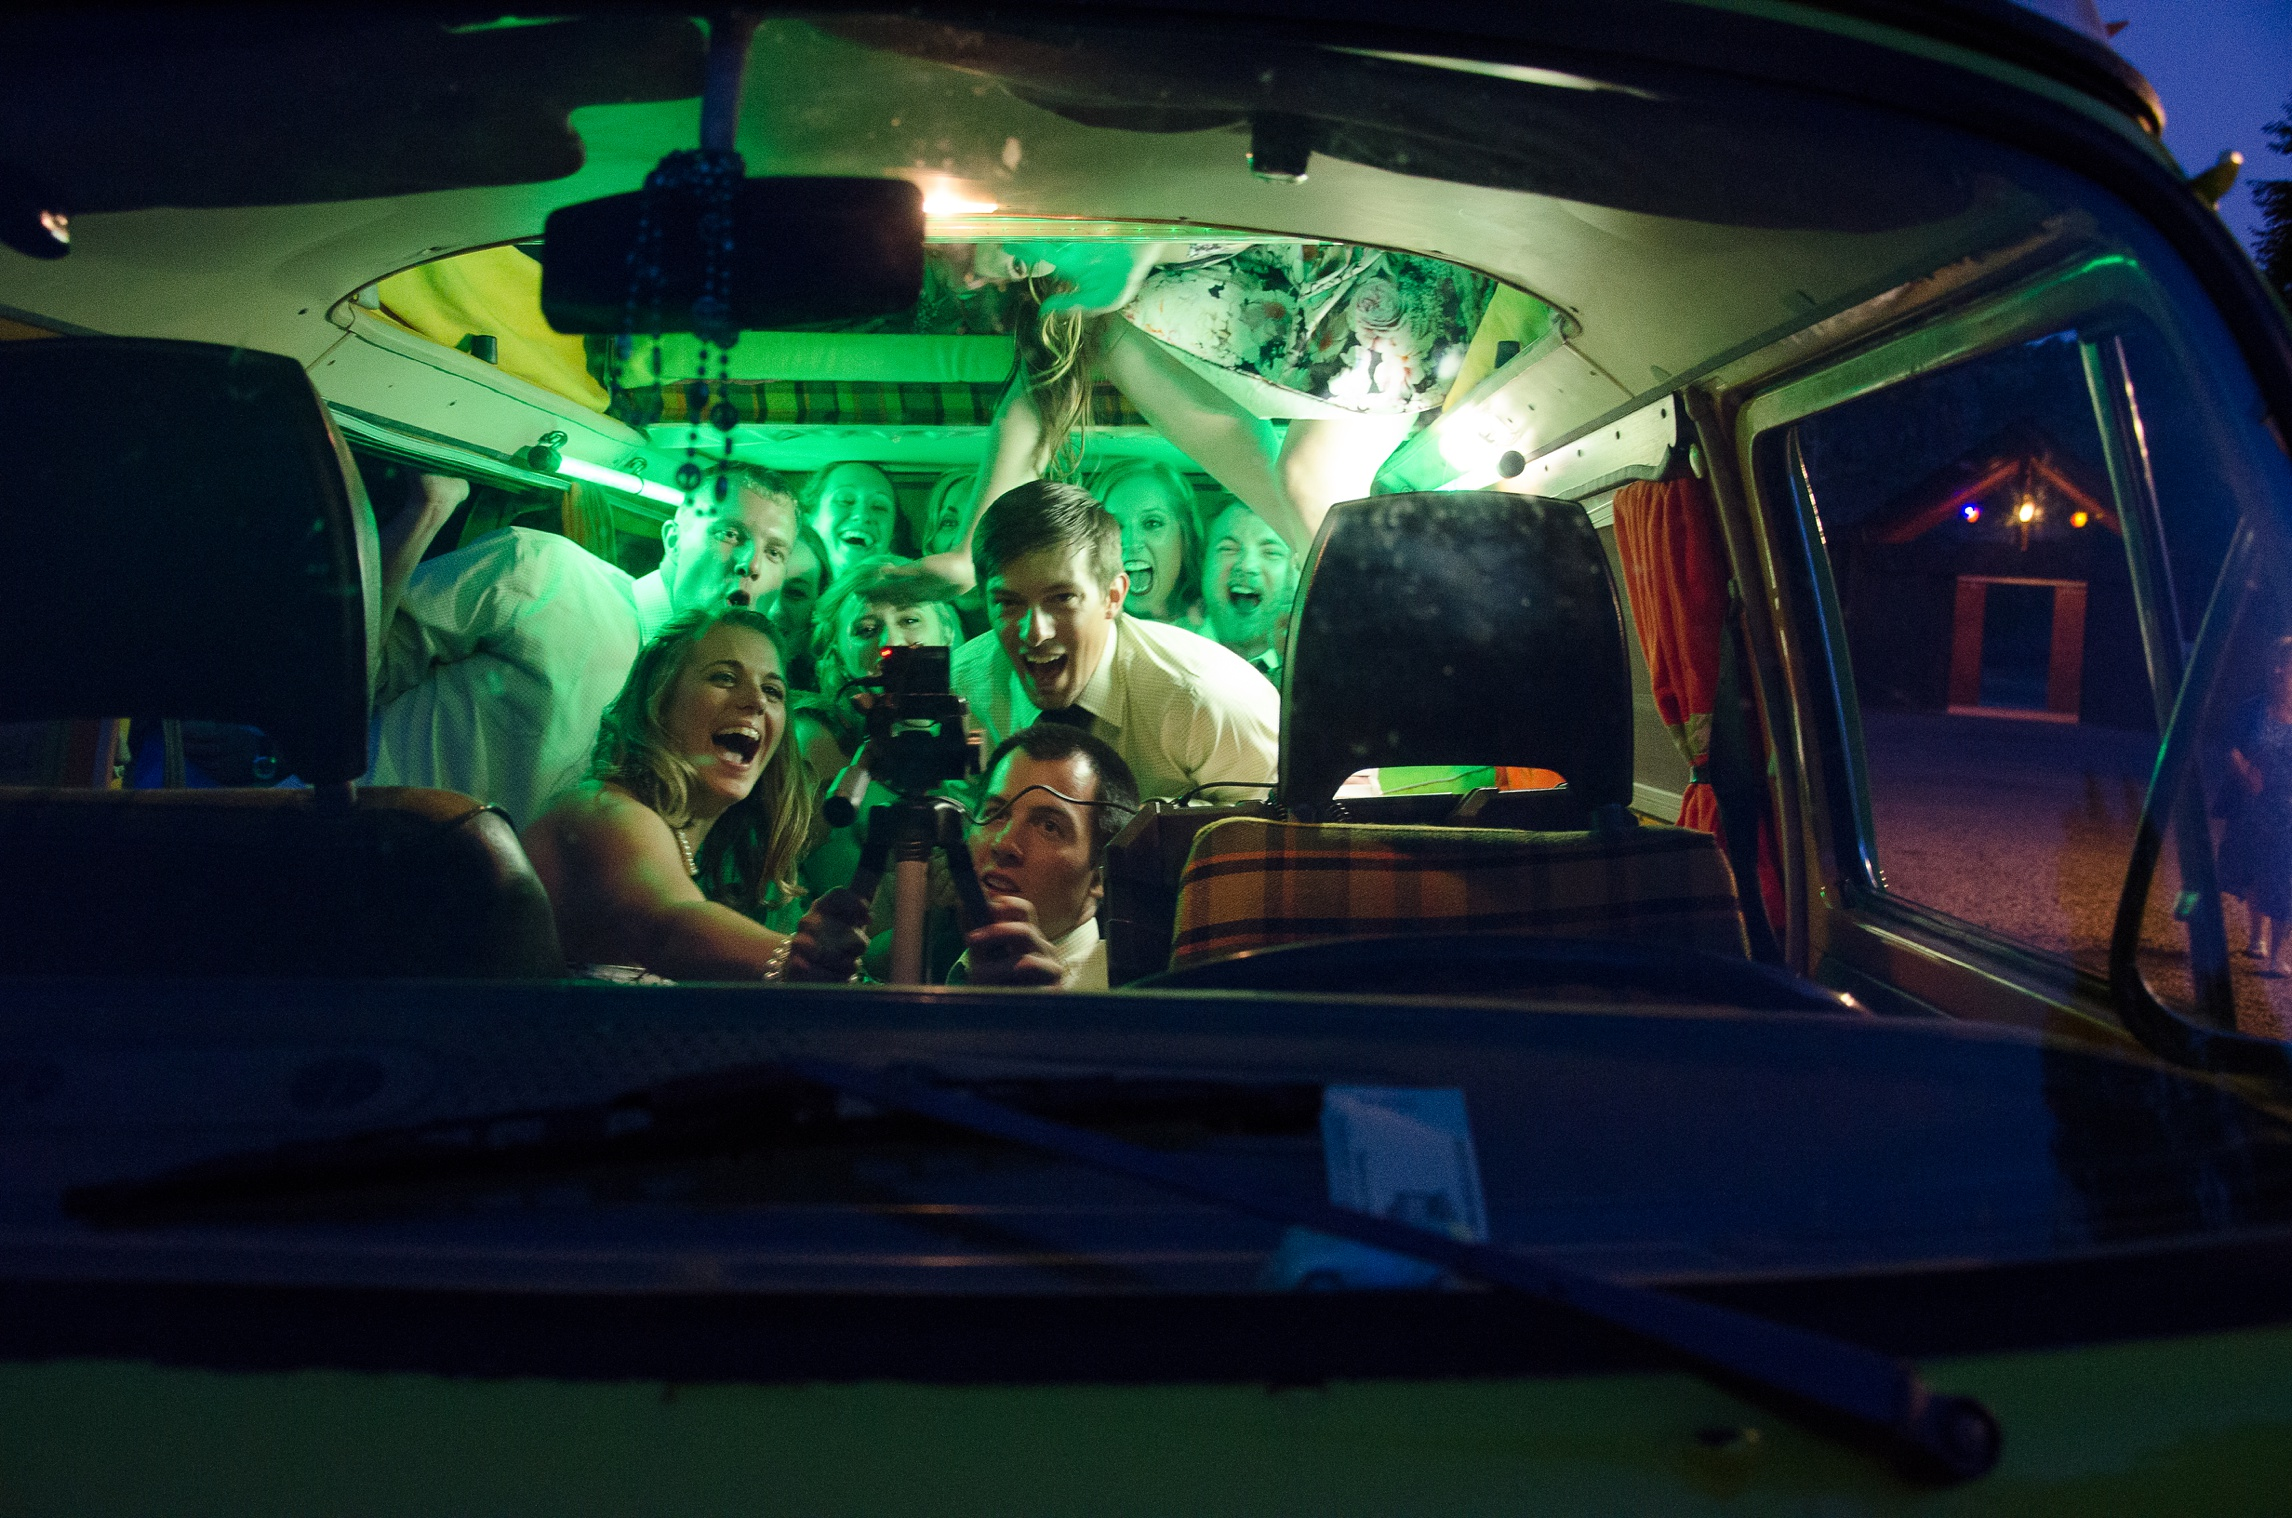 The wedding party piles into a vintage Volkswagen Bus to take photos at Planet Bluegrass in Lyons, Colorado. Wedding photography by Max Salzburg of Sonja K Photography.